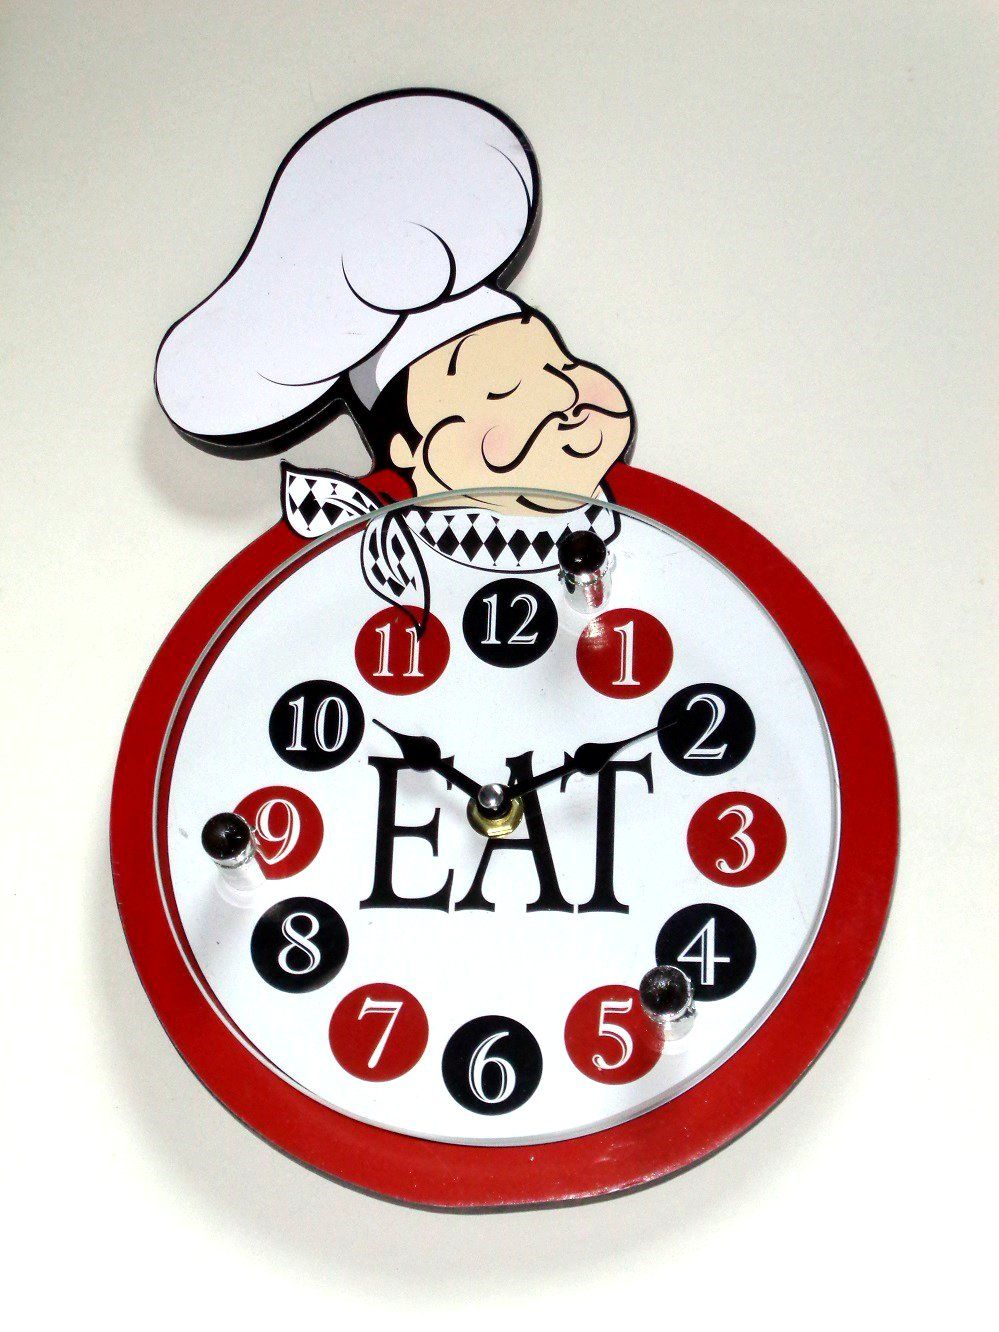 Fat Italian Chef Kitchen Wall Clock $19.95 | Fat Chefs Kitchen Decor ...